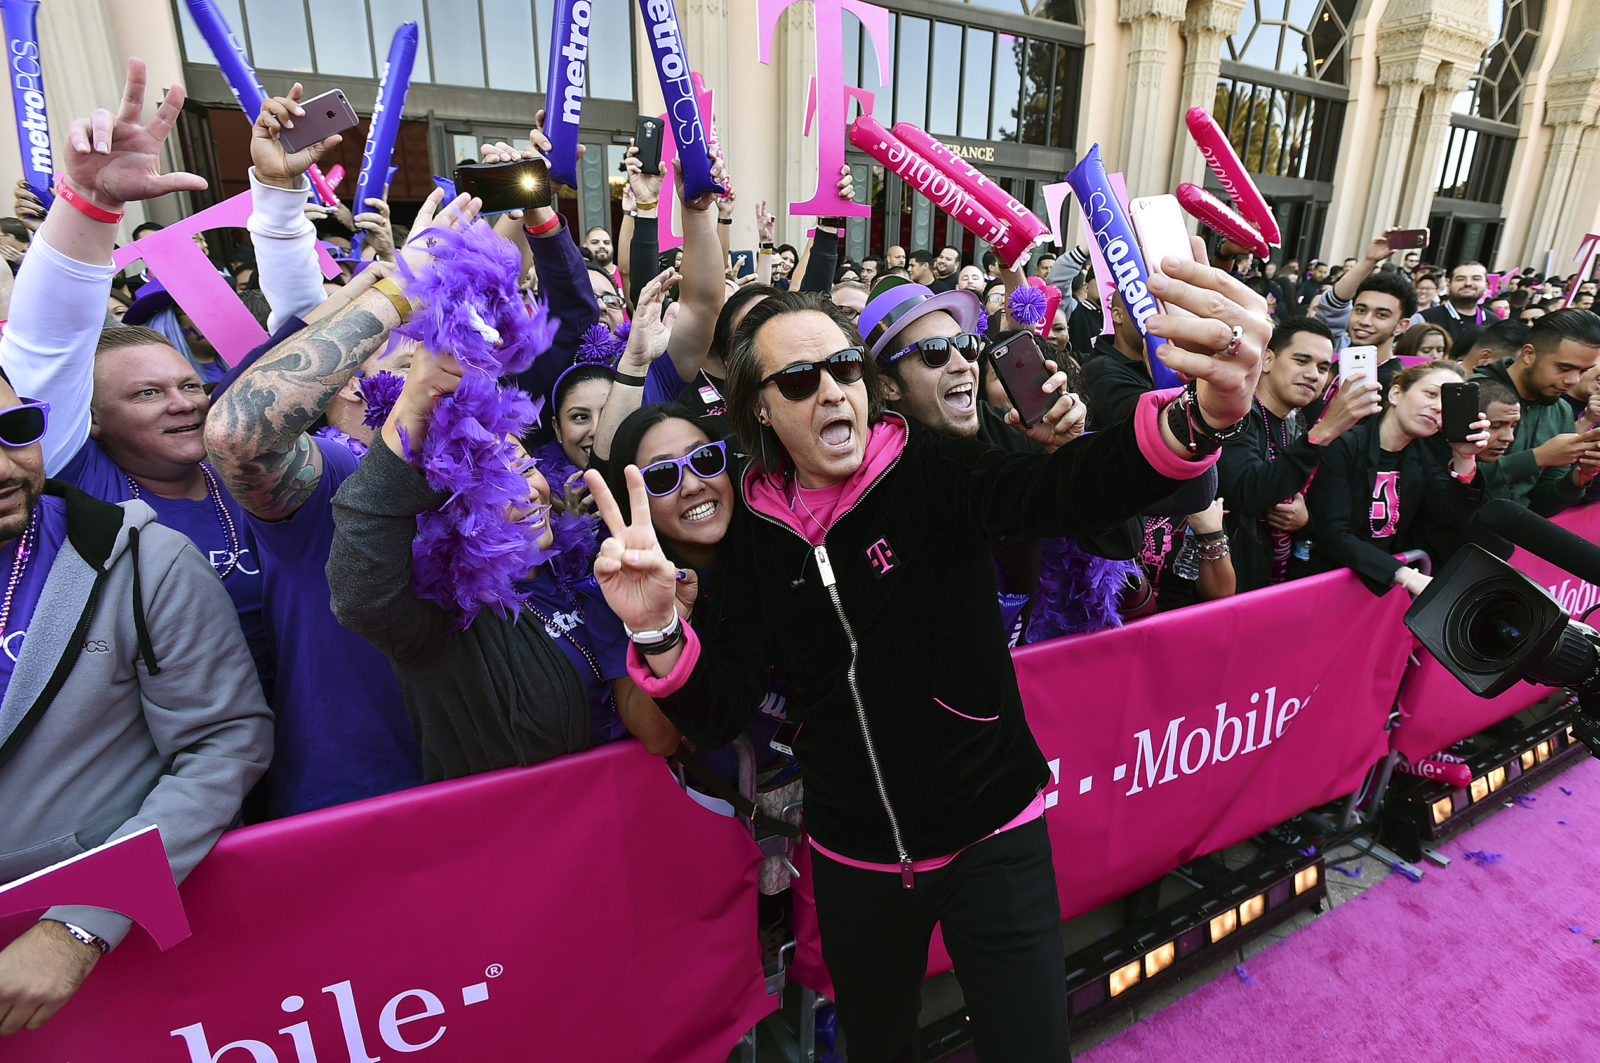 John Legere taking a selfie with fans at T-Mobile & MetroPCS Event